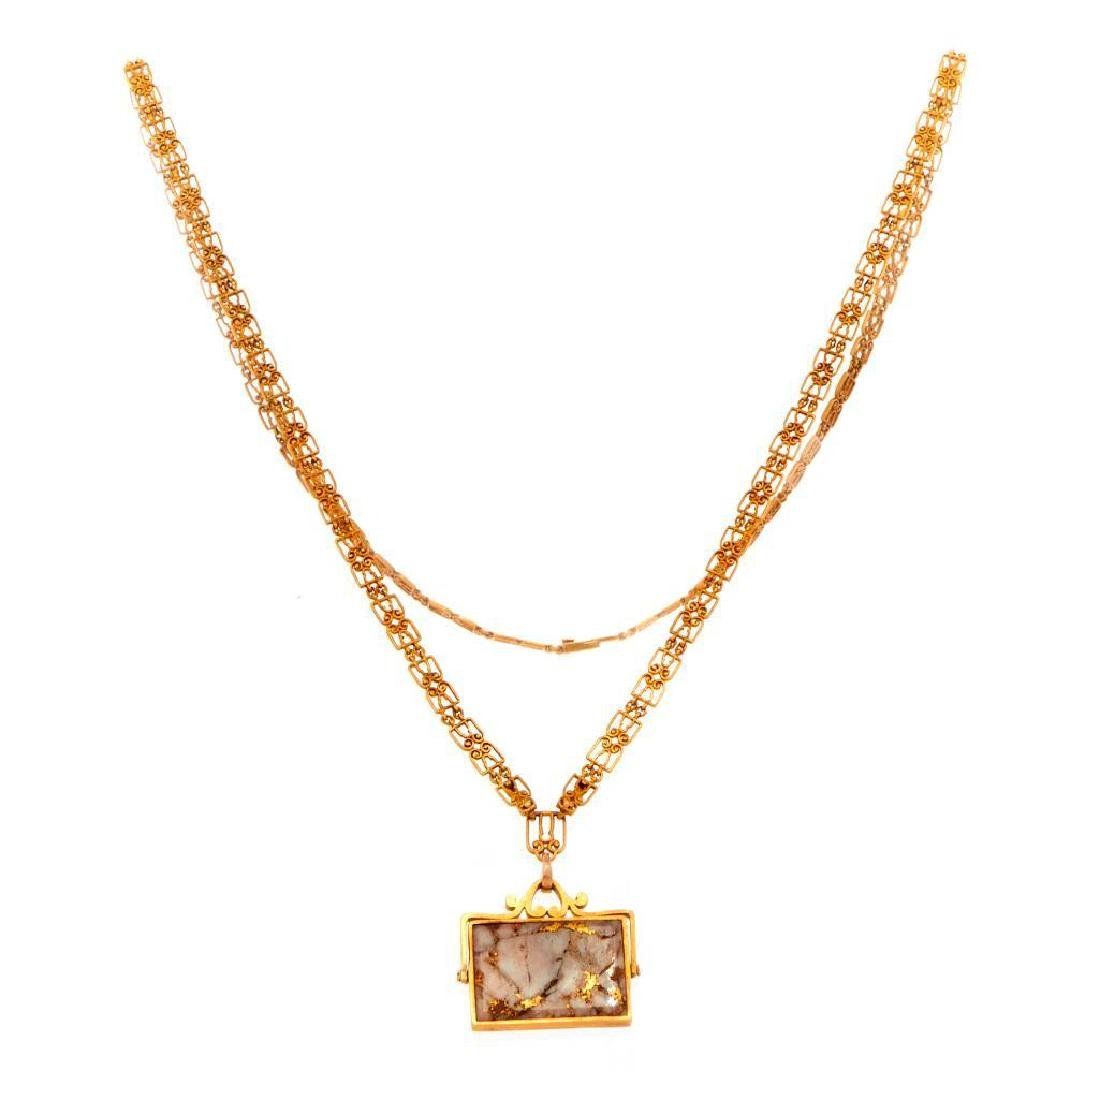 Gold-in-quartz, 14k gold watch fob and 18k gold chain